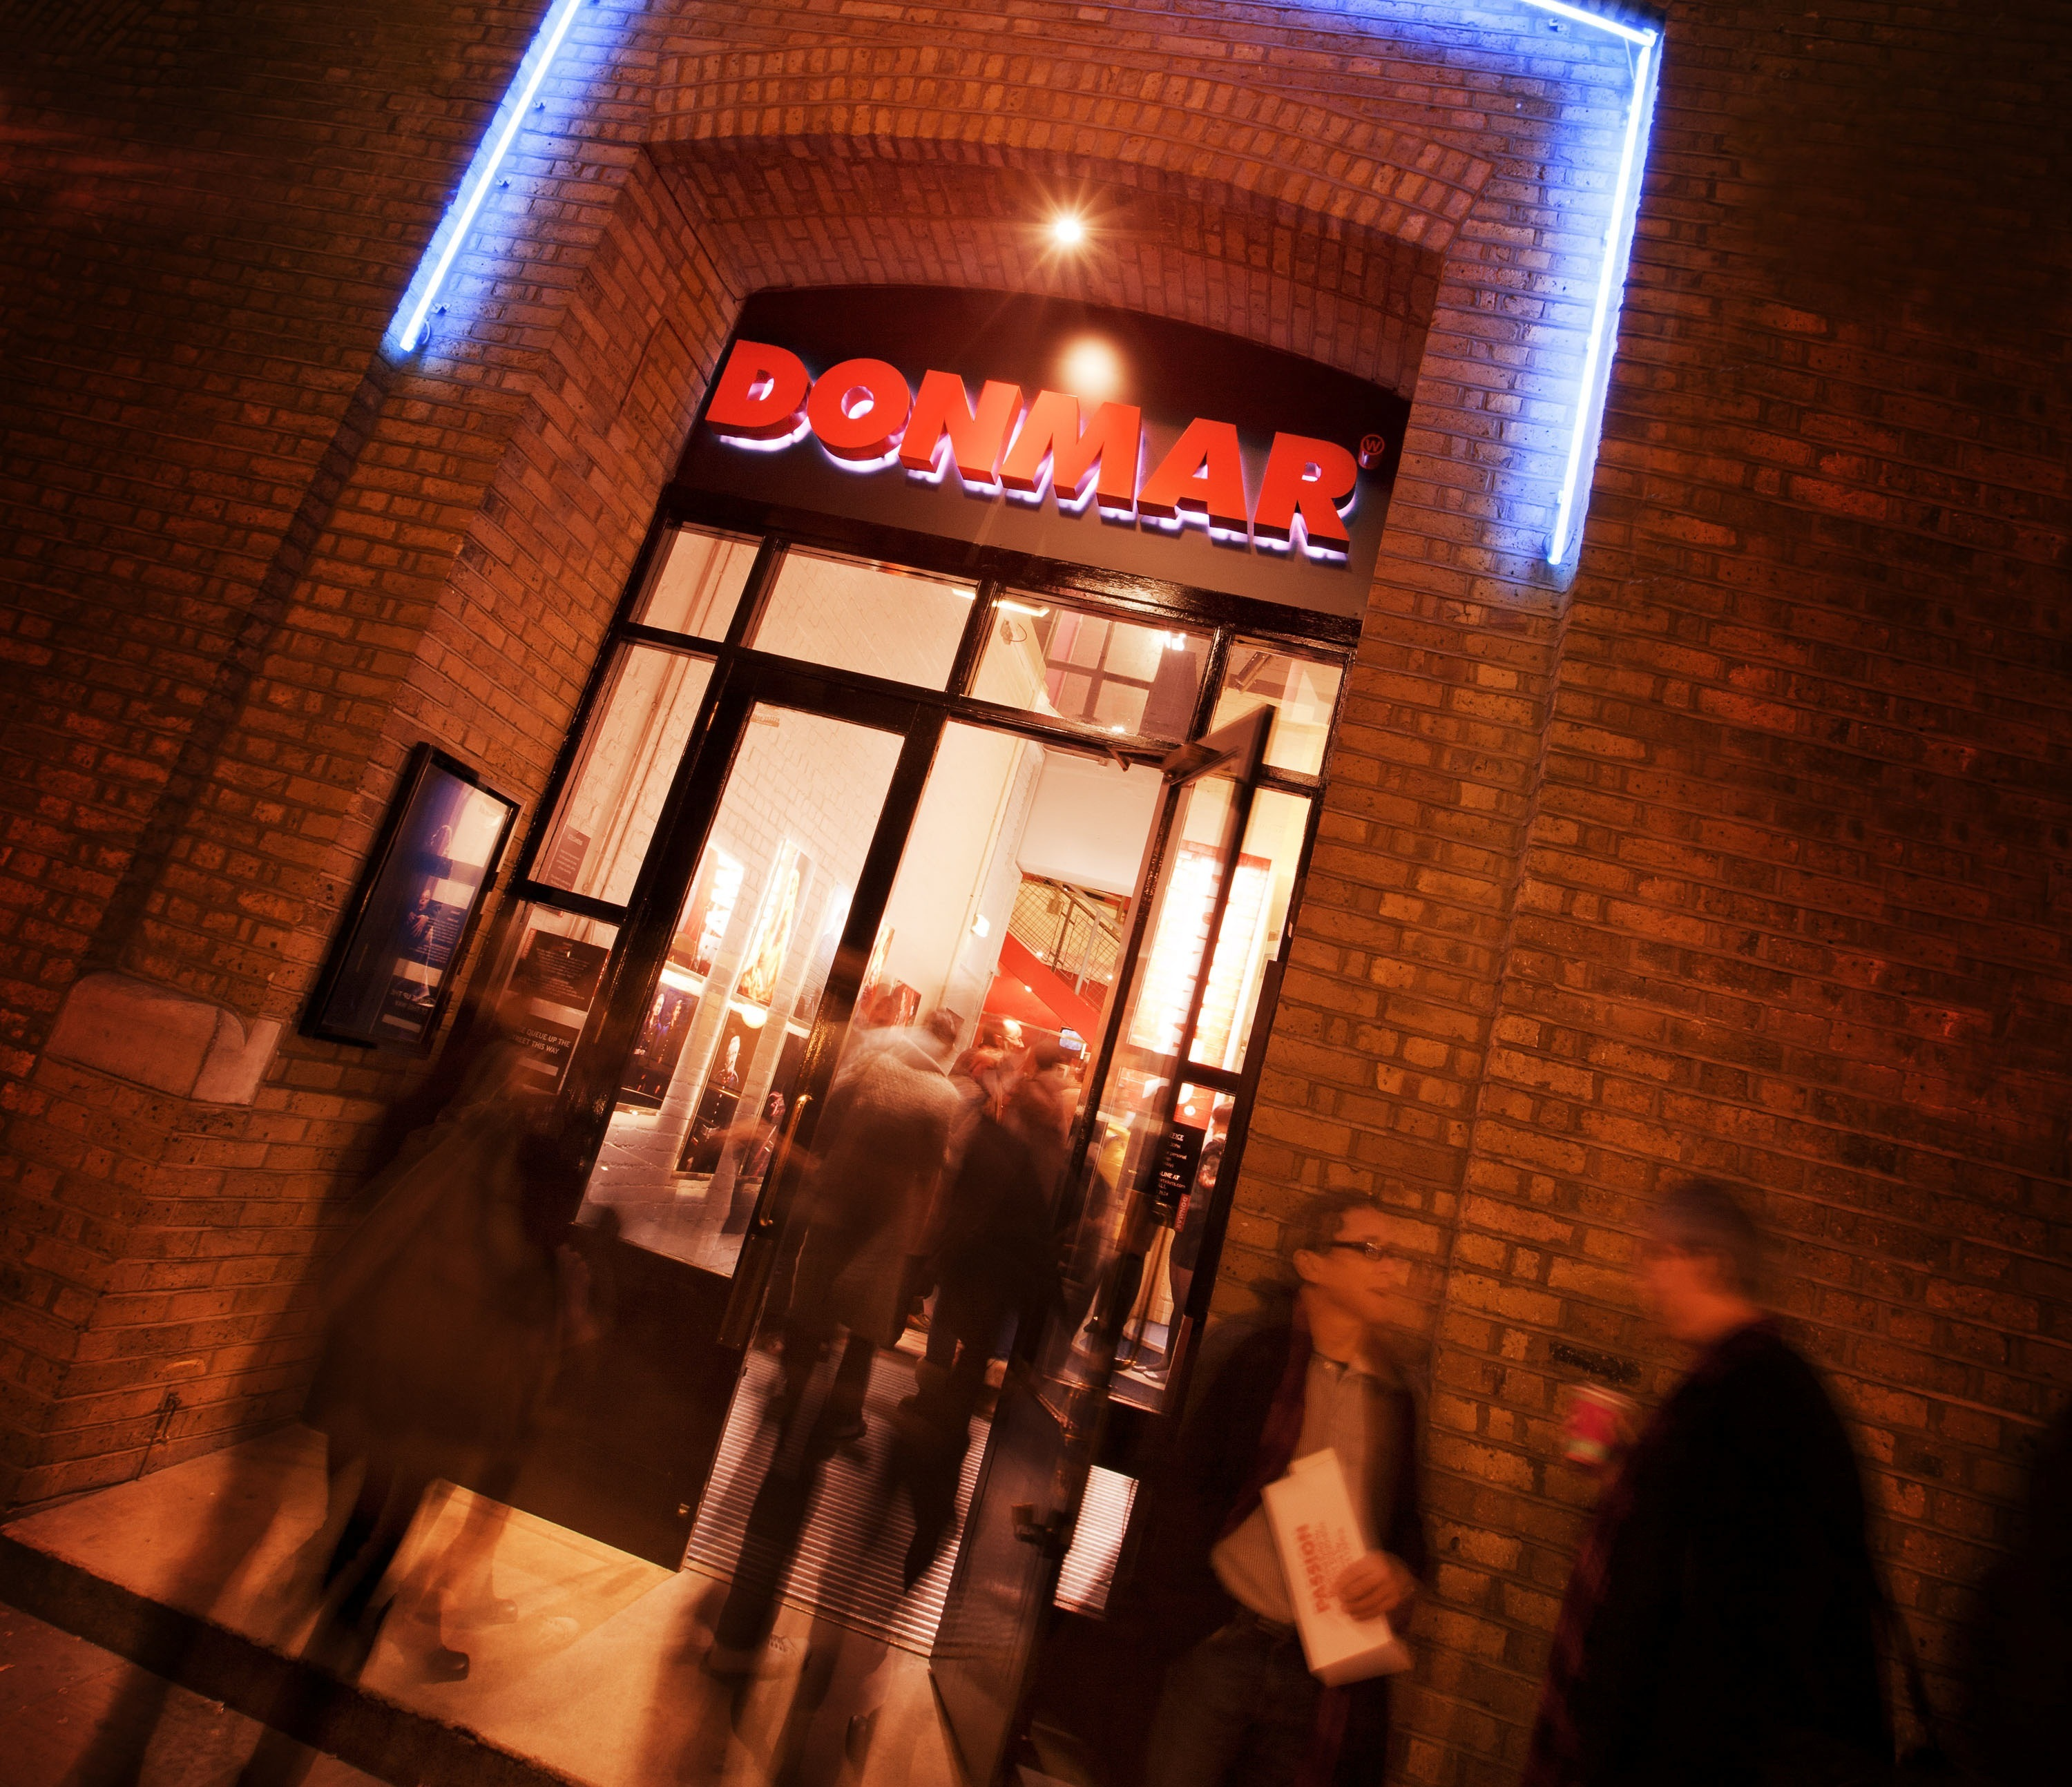 Theatre of the week: Donmar Warehouse